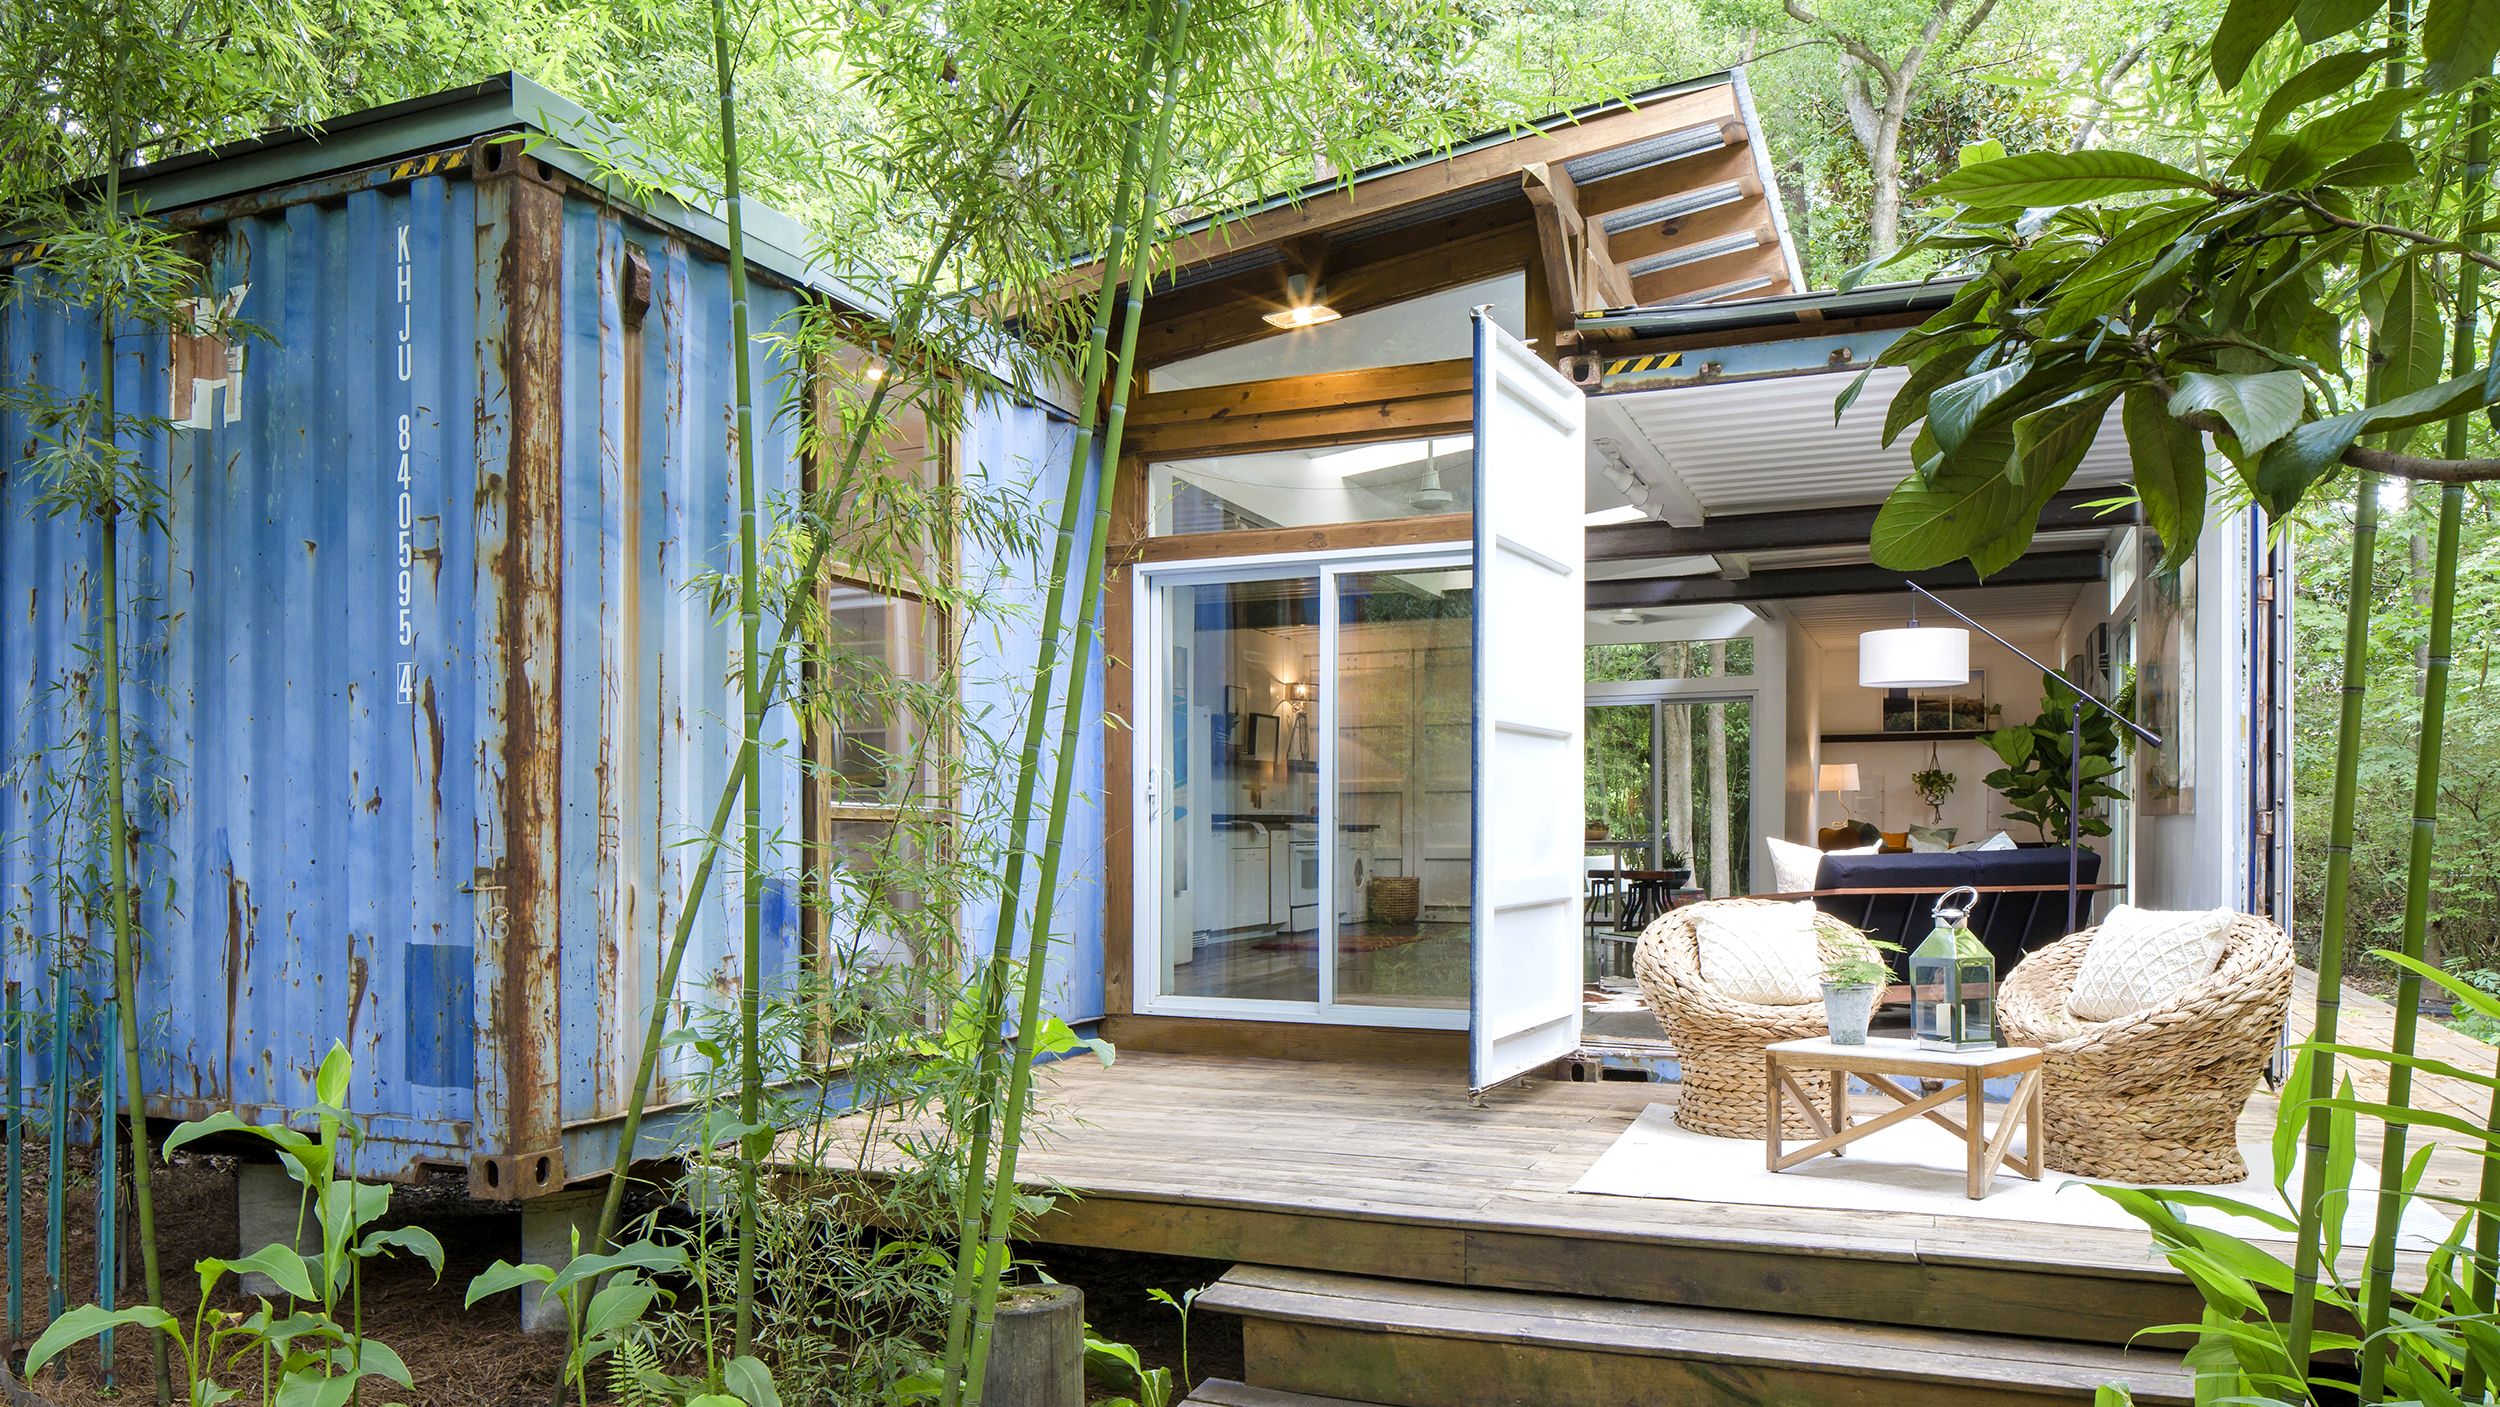 savannah georgia shipping container home. Black Bedroom Furniture Sets. Home Design Ideas